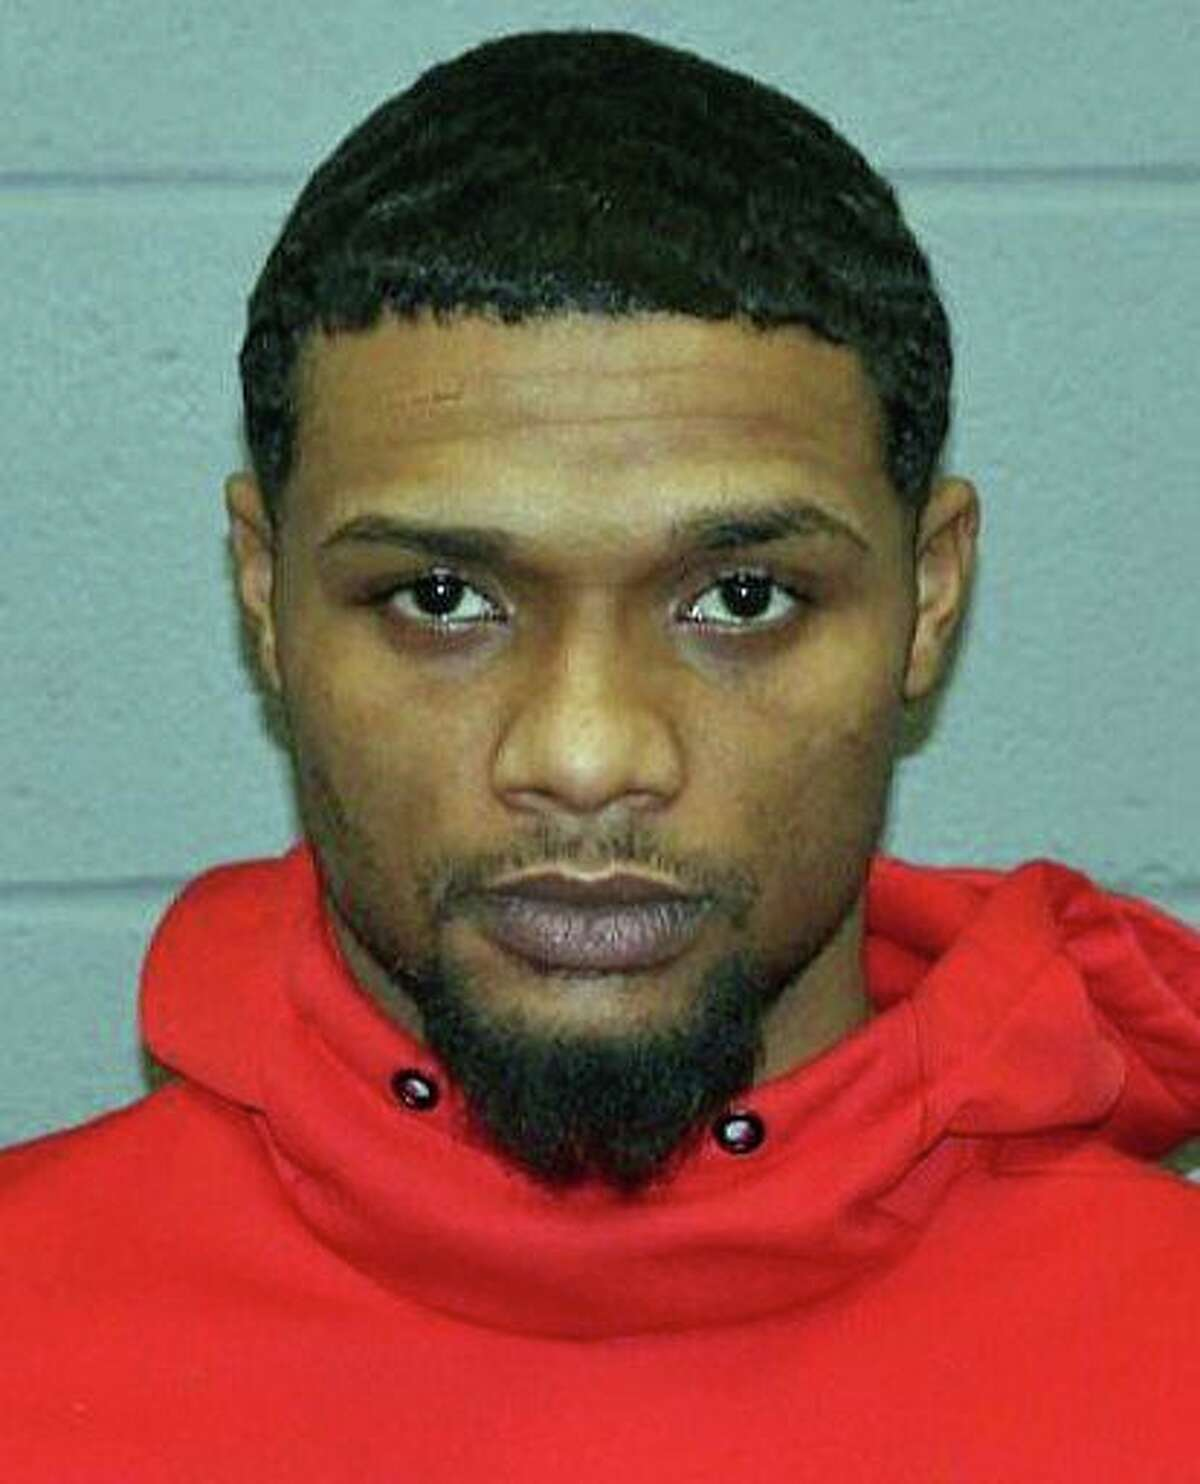 Roznovsky Antonio Machado, 24, of Waterbury, is being sought by Naugatuck and State Police in connection with a traffic stop where a Naugatuck officer fired a shot at a vehicle. Police believe Machado was the driver of that vehicle. Deputy Chief Christopher McAllister said that the officer stopped the vehicle